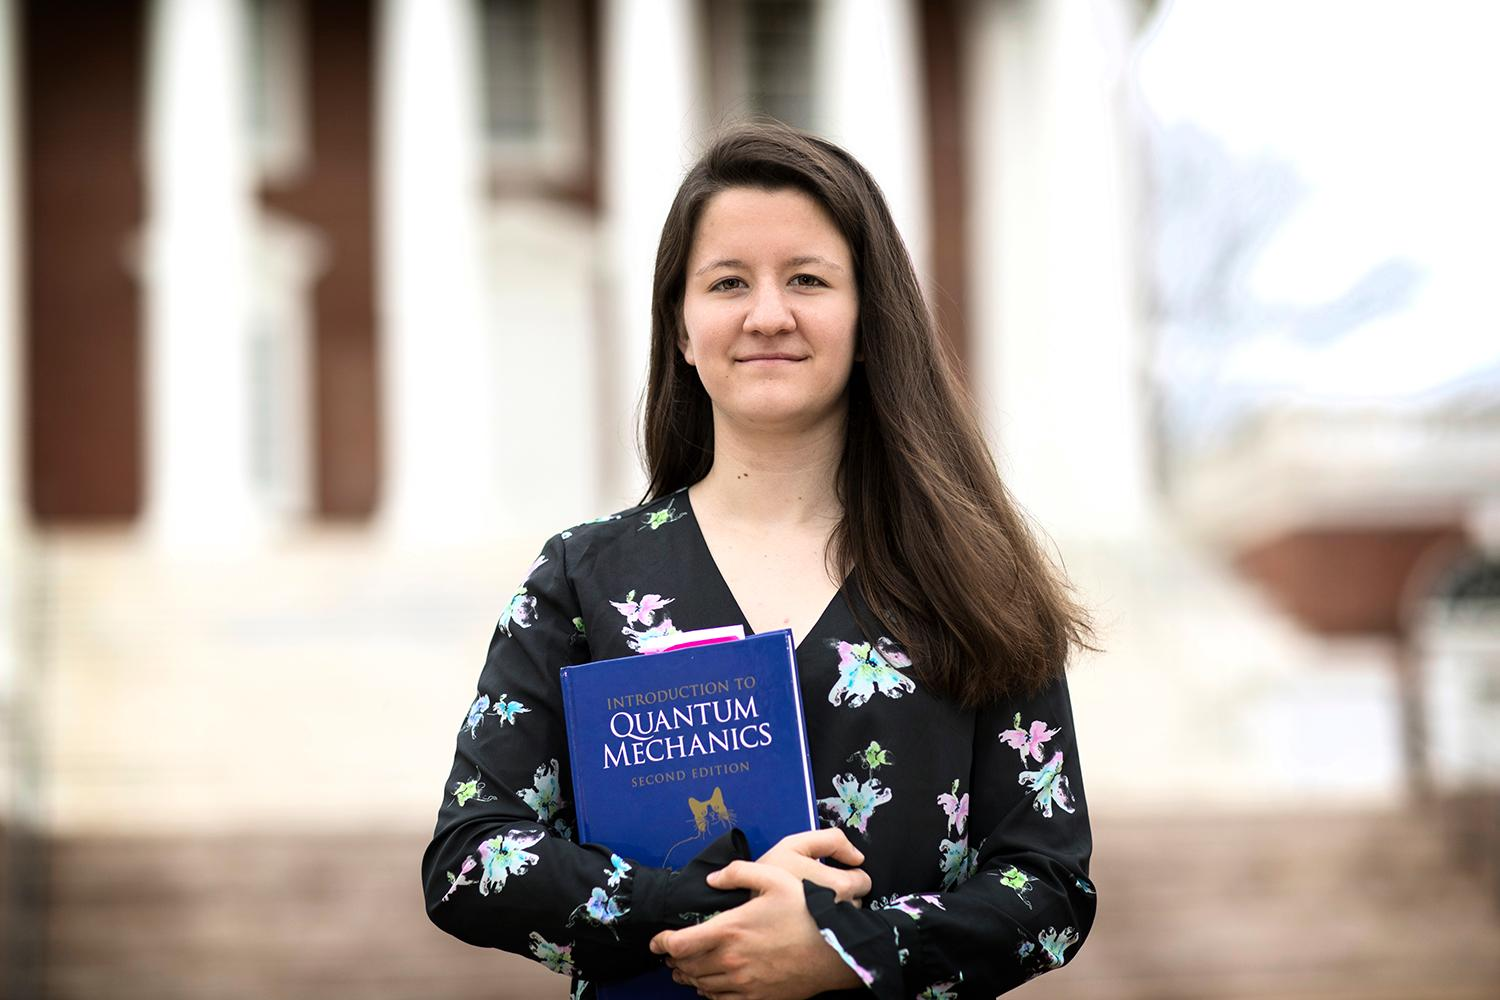 Bridget Andersen is headed to McGill University in Montreal to pursue a Ph.D. in astrophysics.